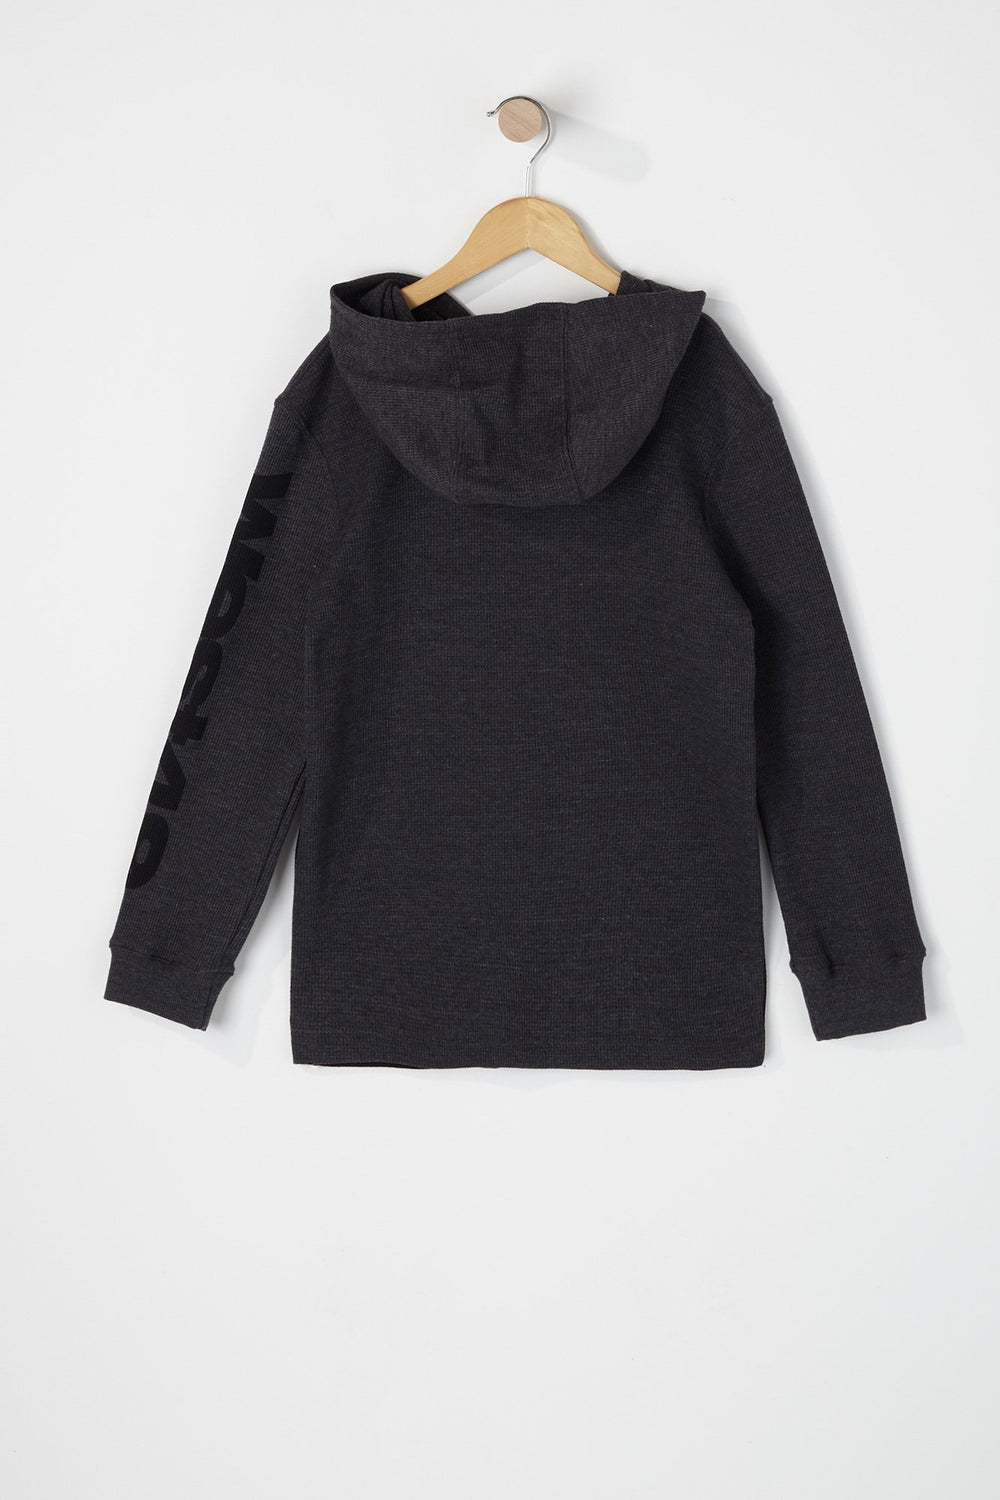 West49 Boys Waffle Henley Hooded Long Sleeve Shirt Charcoal